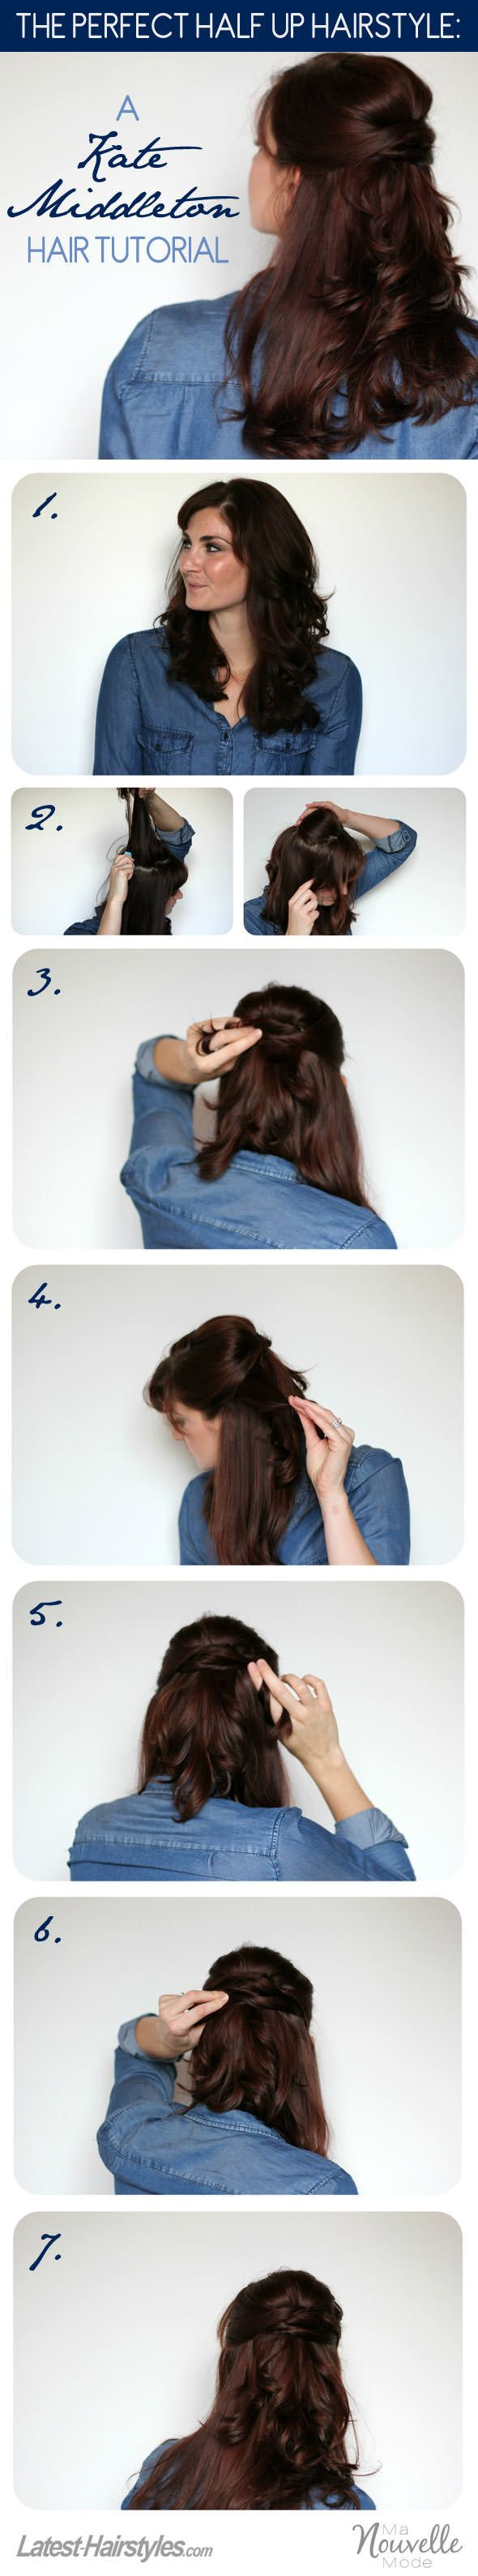 Beauty   Hair | A Kate Middleton Hair Tutorial: Her Famous Half Up Hairstyle